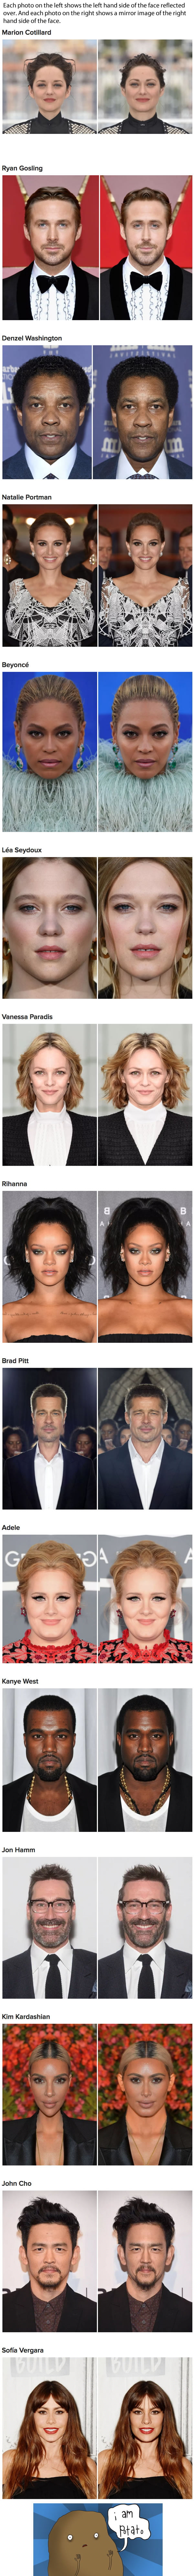 How Celebs Look Like If Their Faces Were Perfectly Symmetrical